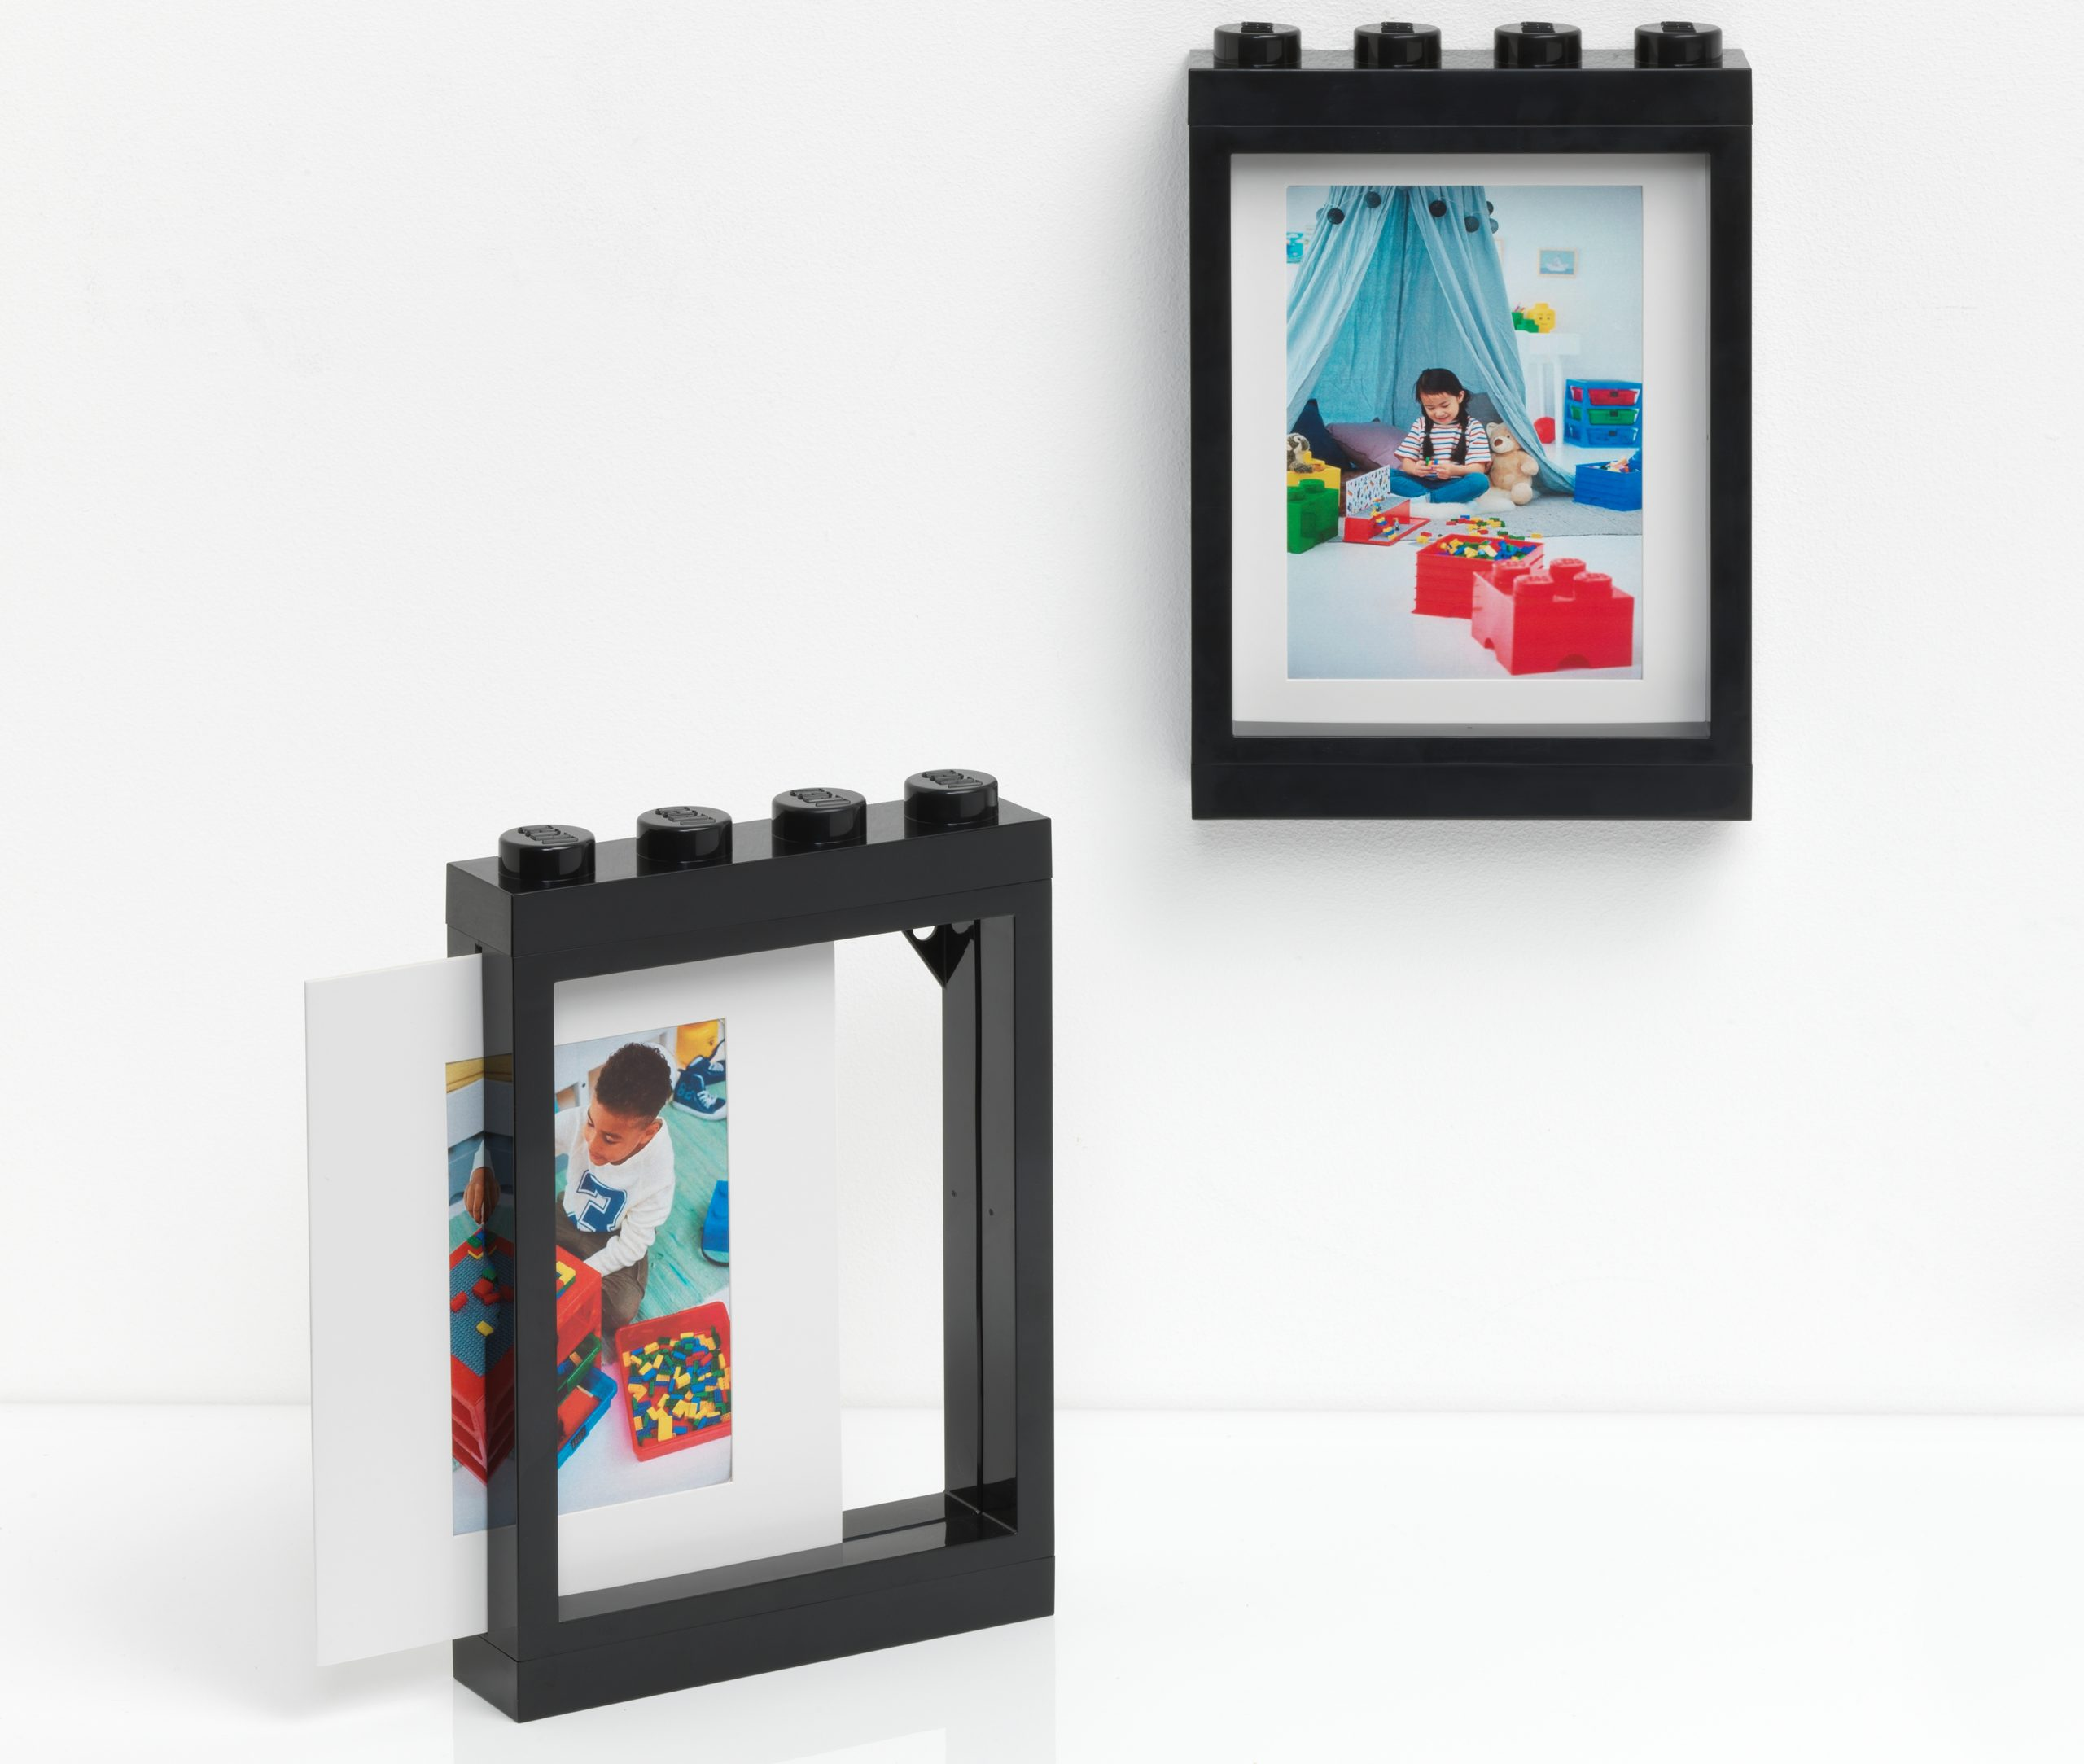 lego 5006215 picture frame scaled